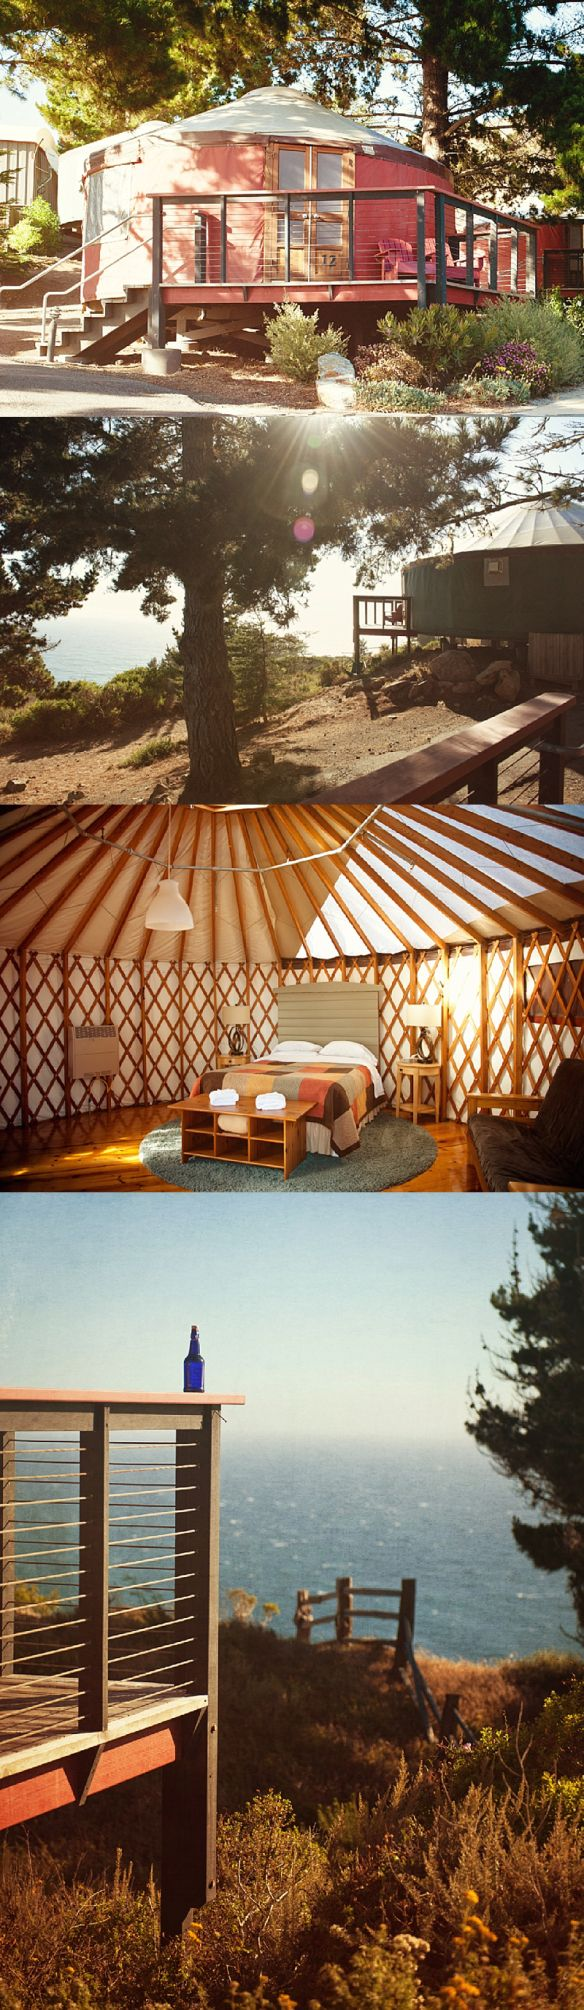 Yurt in Big Sur; Treebones Resort, Big Sur, California